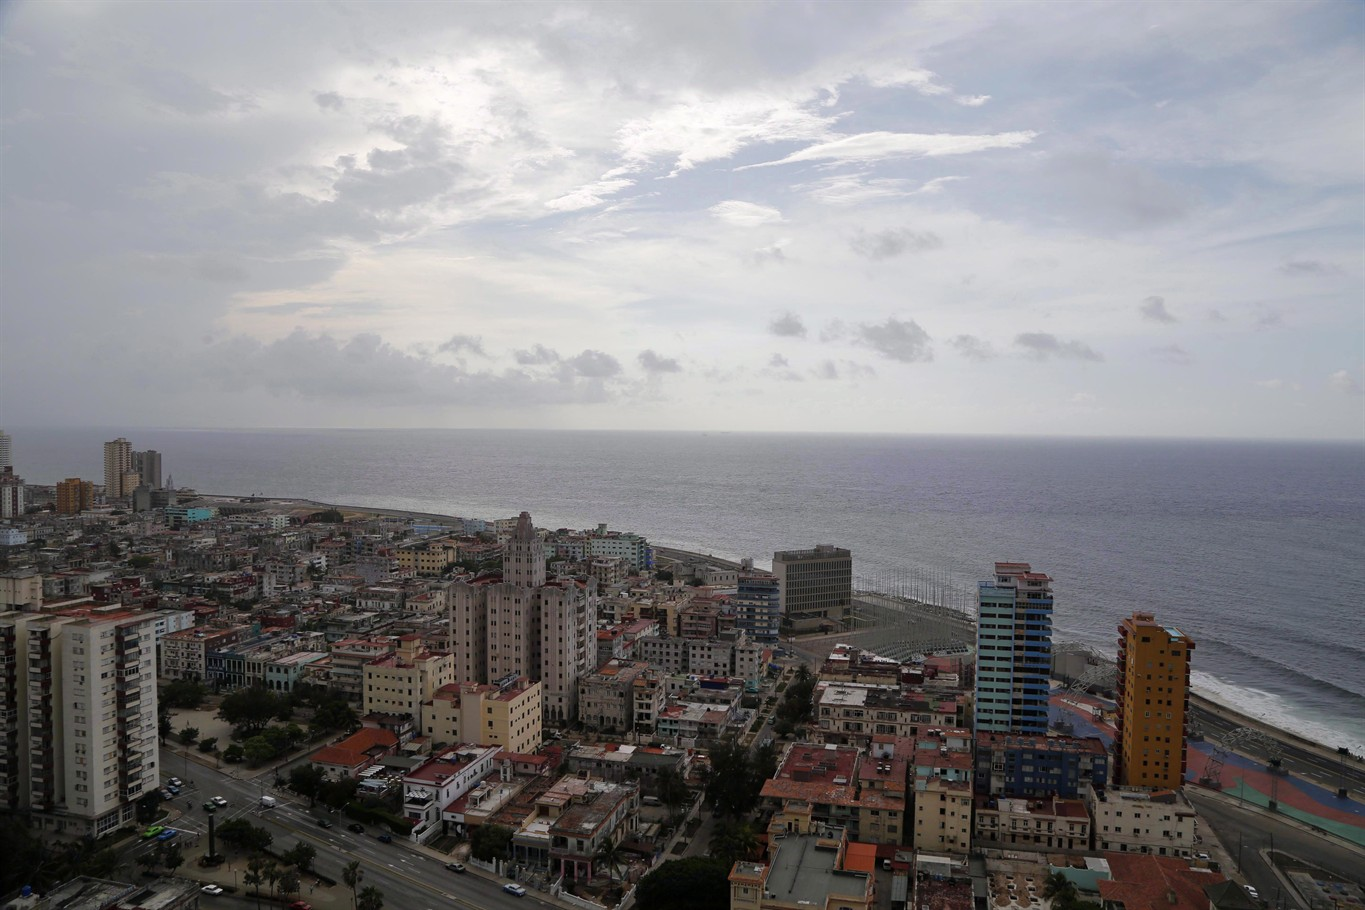 US State Department to investigate 'sonic attacks' in Cuba